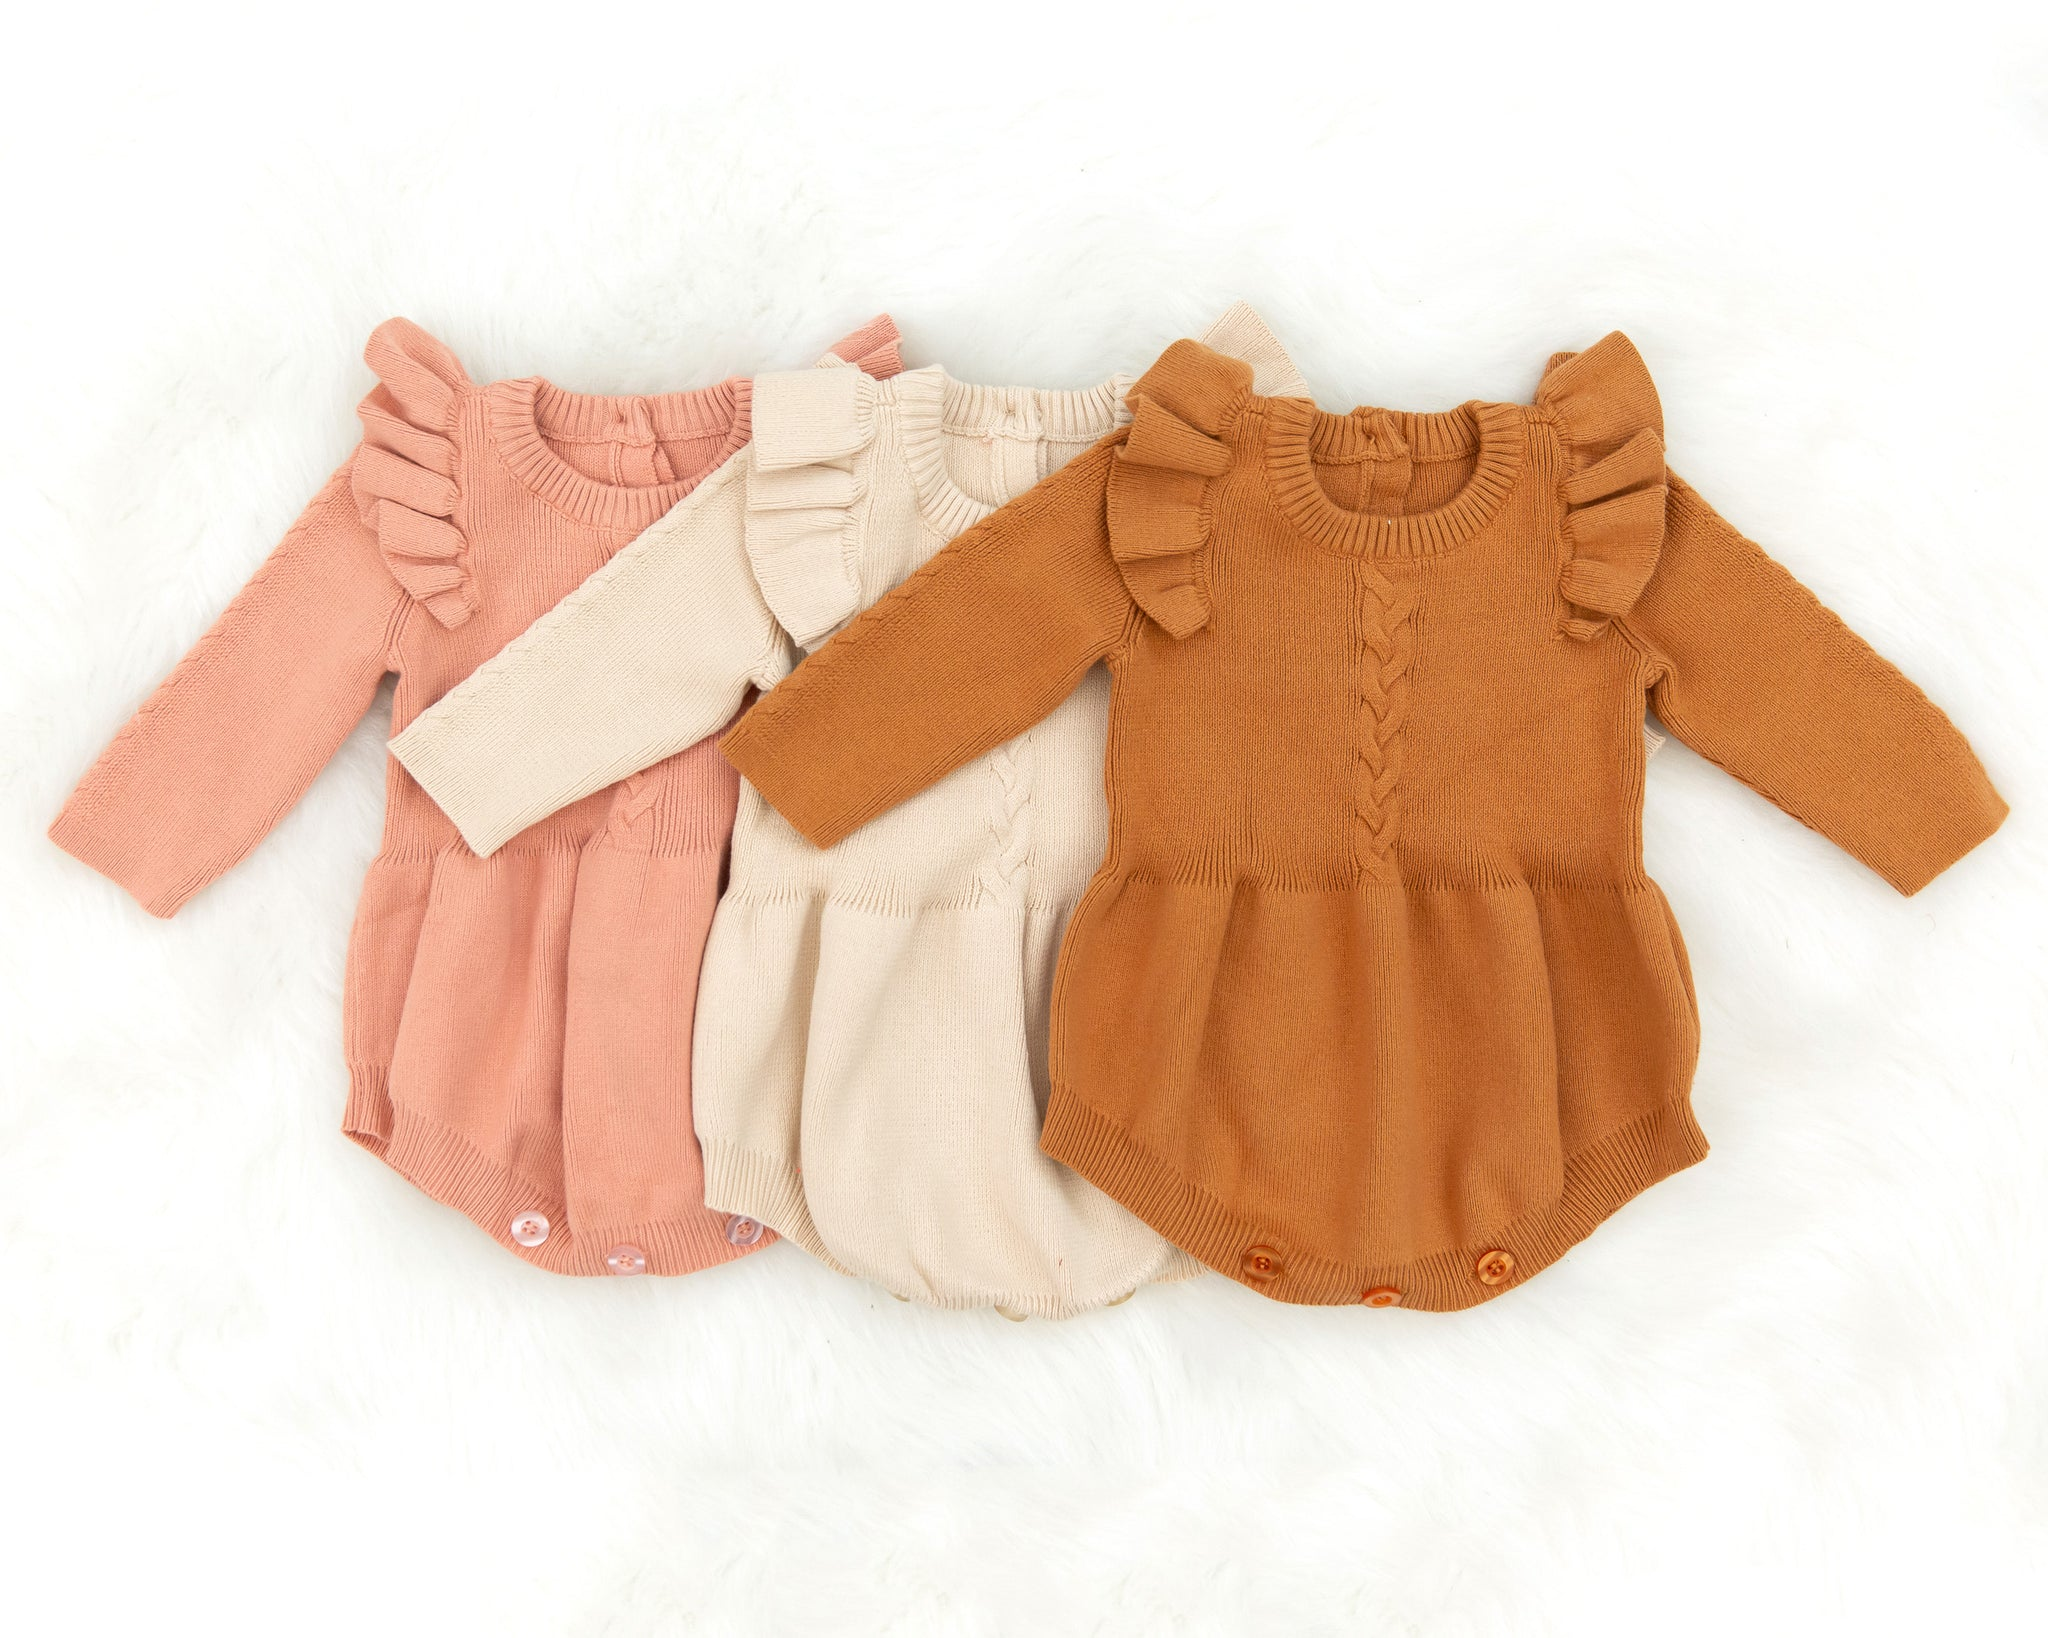 Birdie Knit Romper in Autumn Orange - Reverie Threads